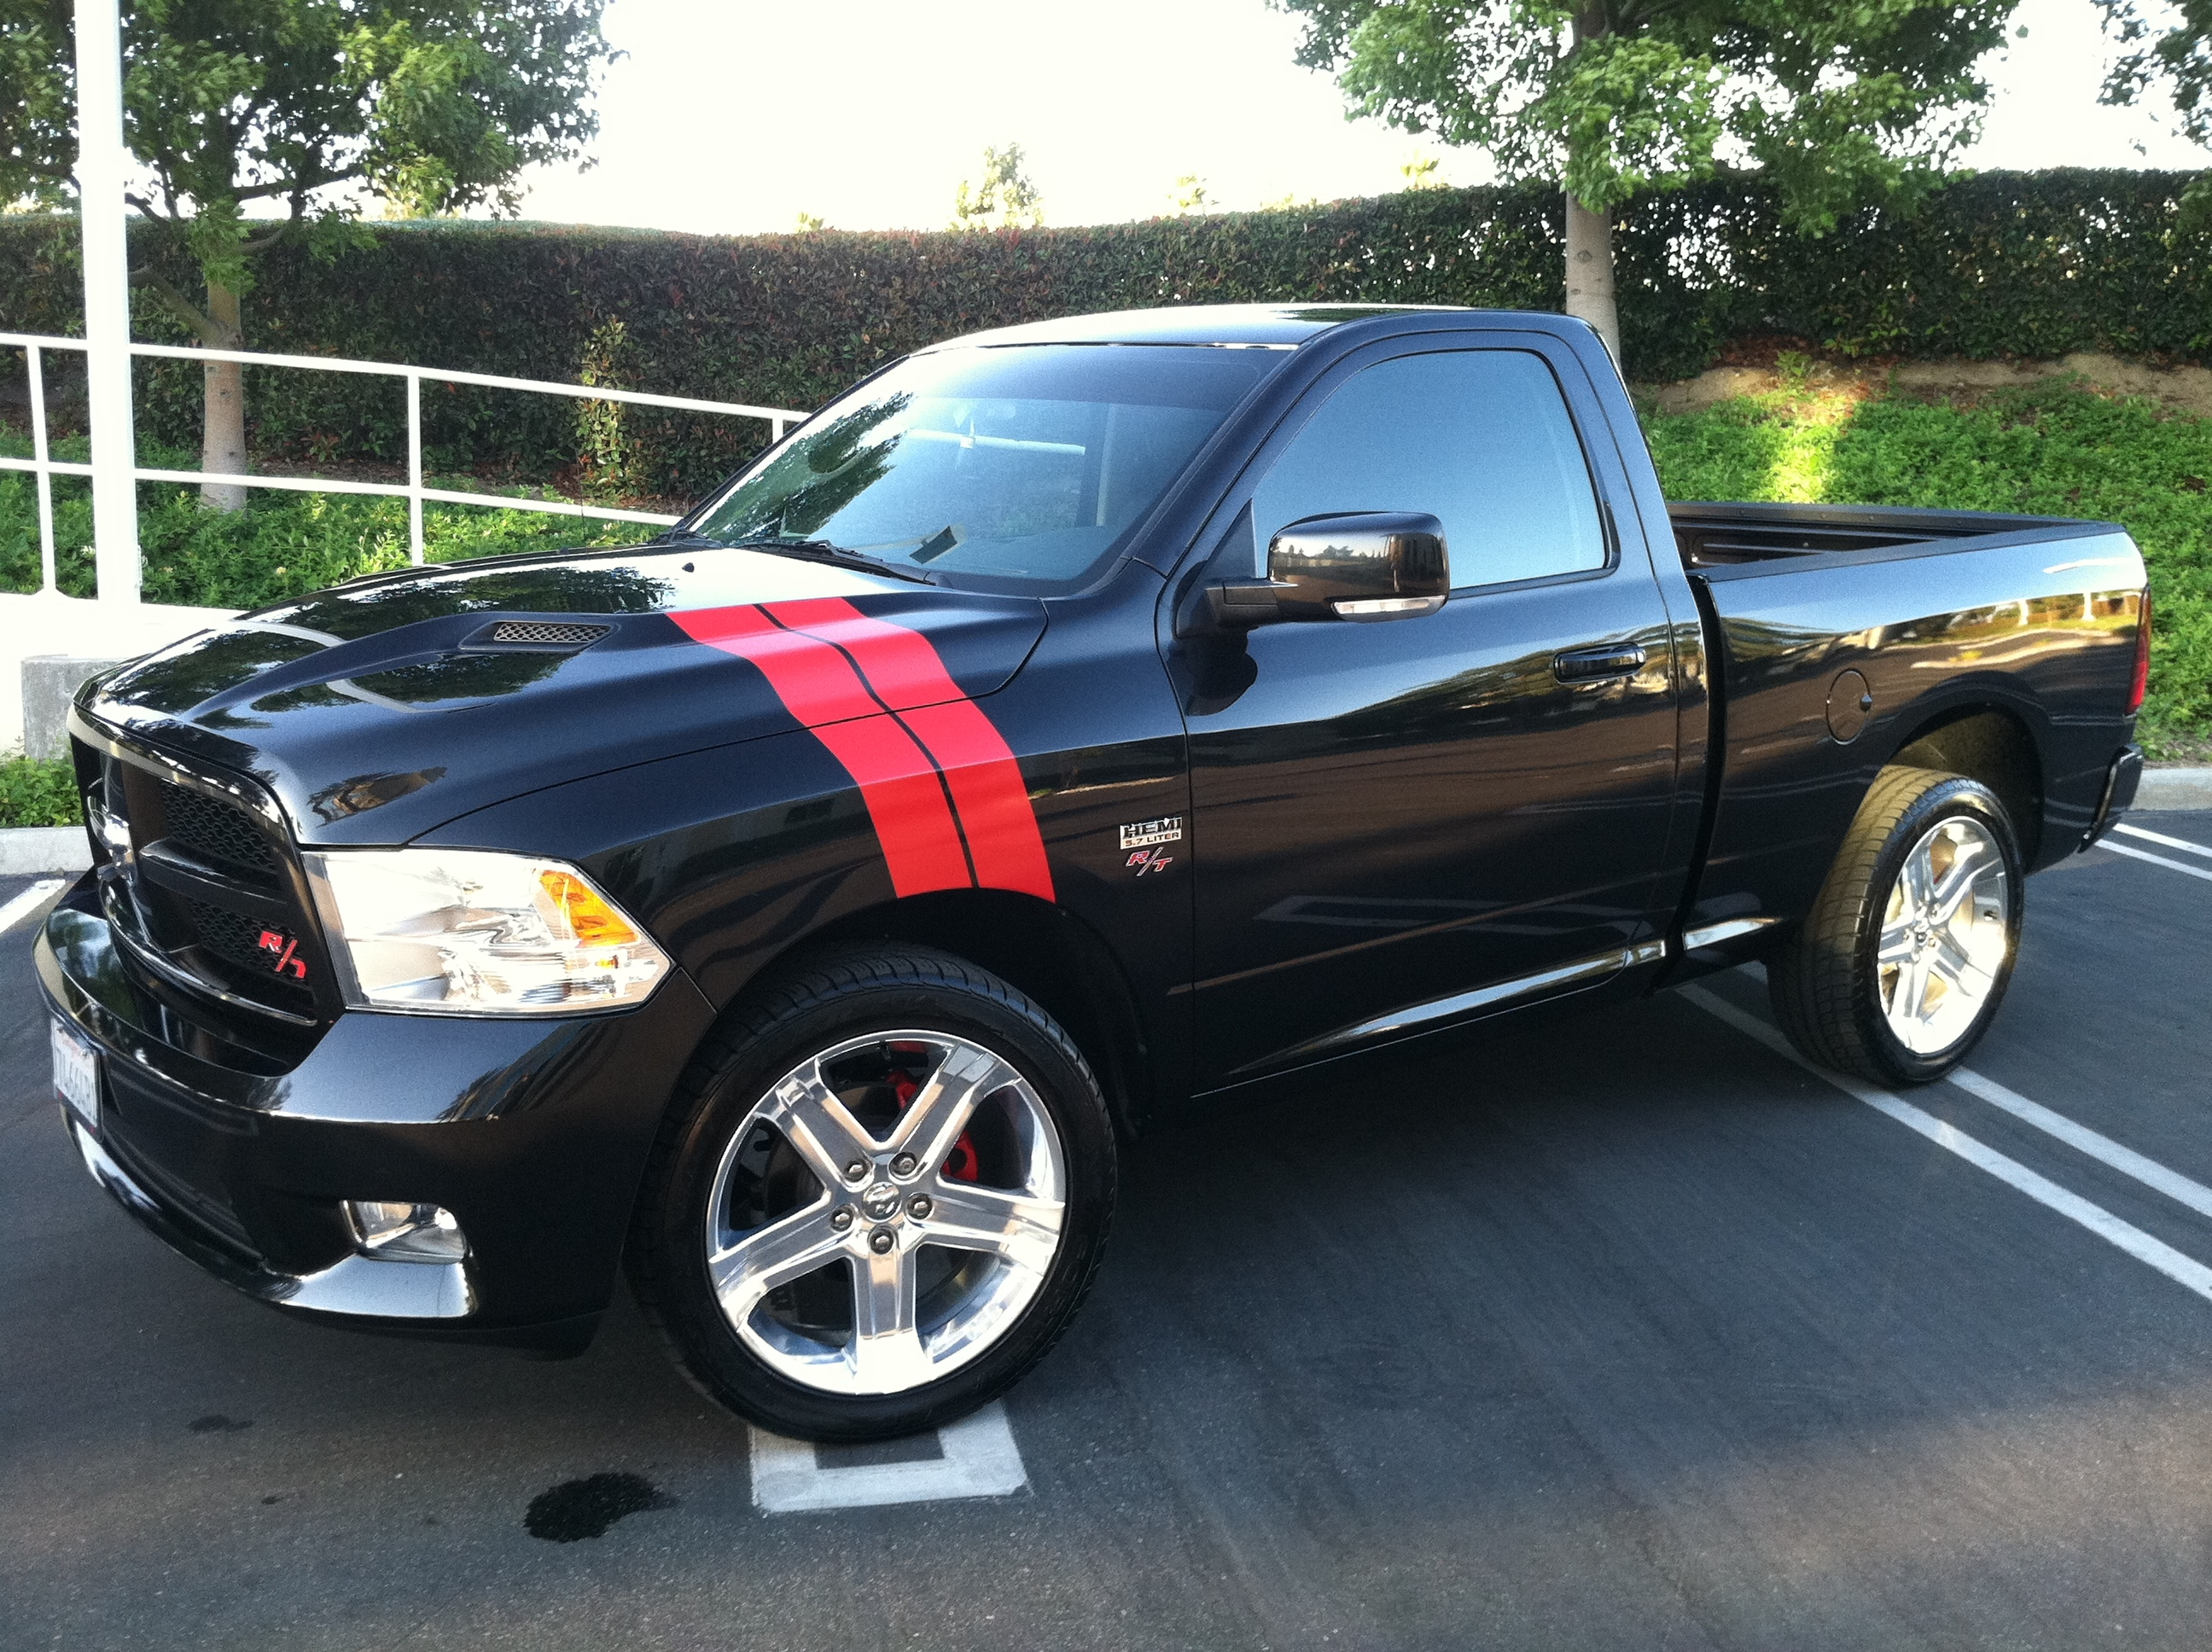 maceramrt 2011 dodge ram 1500 regular cab specs photos. Black Bedroom Furniture Sets. Home Design Ideas